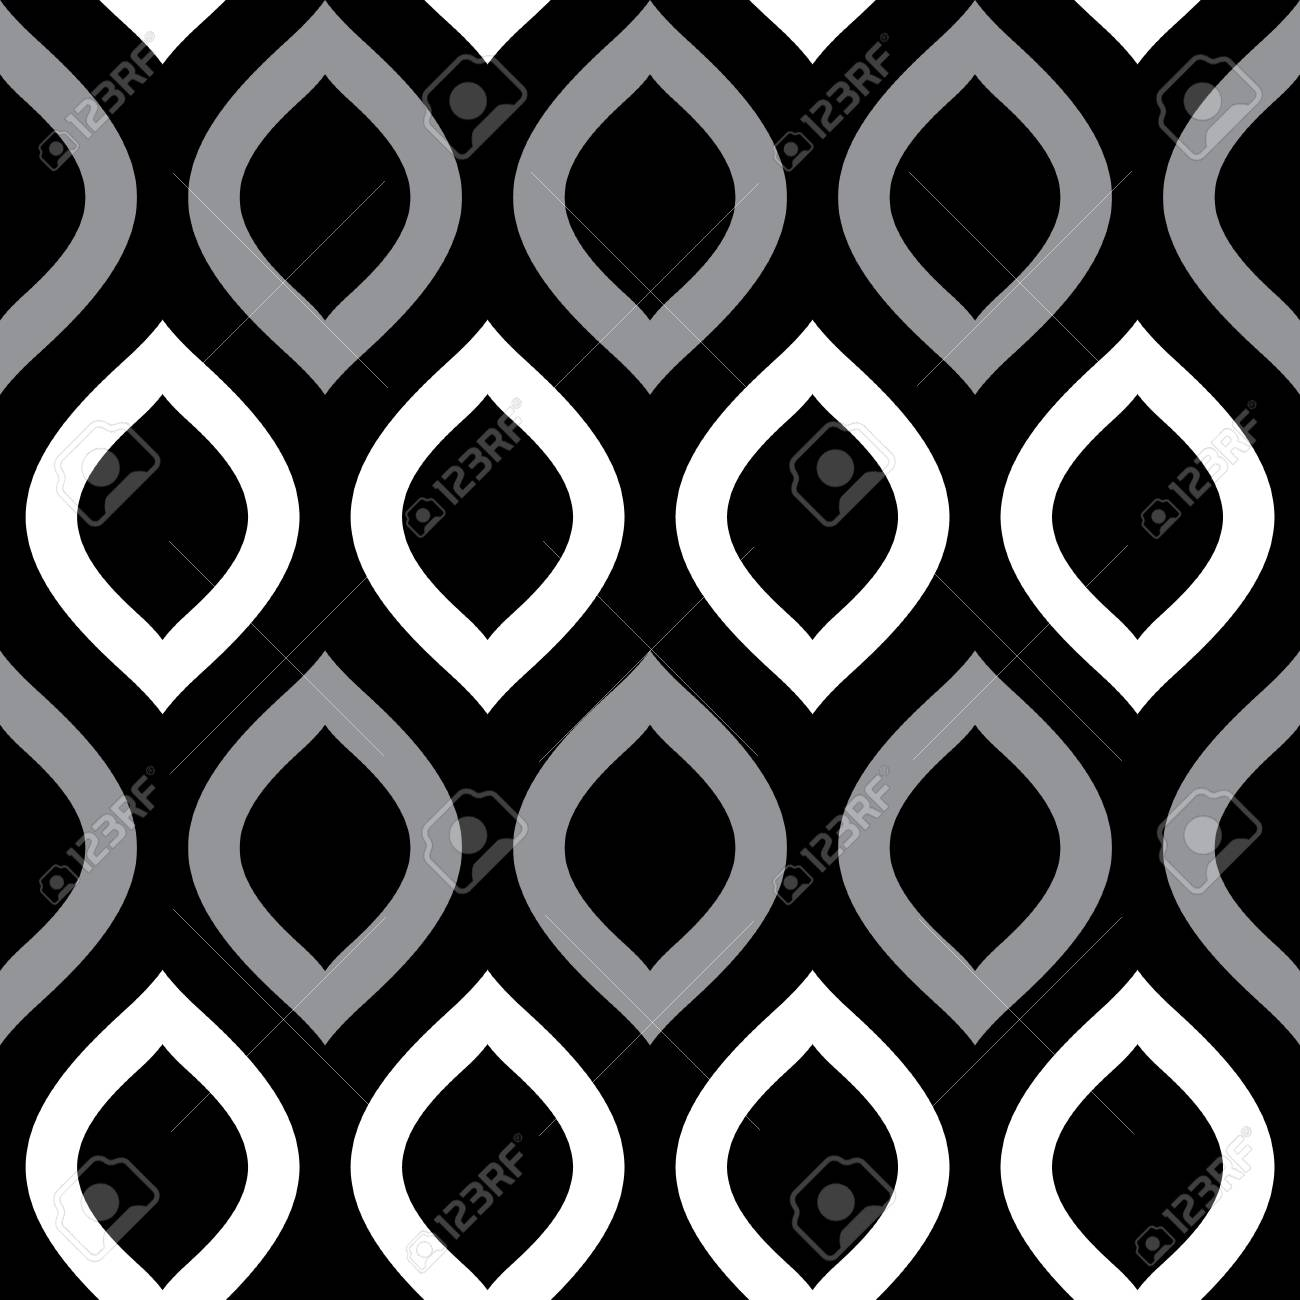 Geometric Stylish Background Modern Graphic Design Vector Black Royalty Free Cliparts Vectors And Stock Illustration Image 58399979